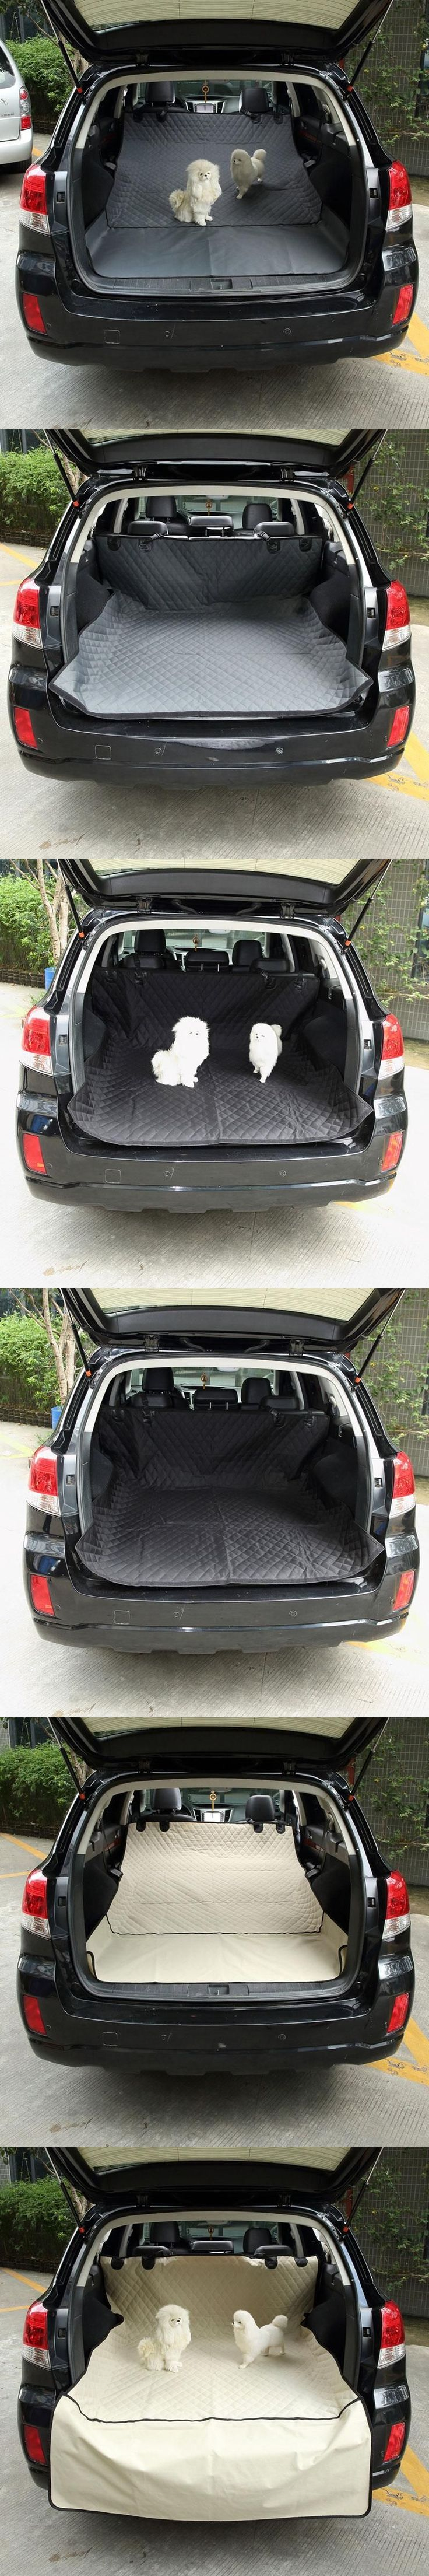 Waterproof Pet Trunk Cushion Car Seat Cover Protector Dog Car Trunk Cover Mat Pets Barrier Nonslip Dog Car Carriers